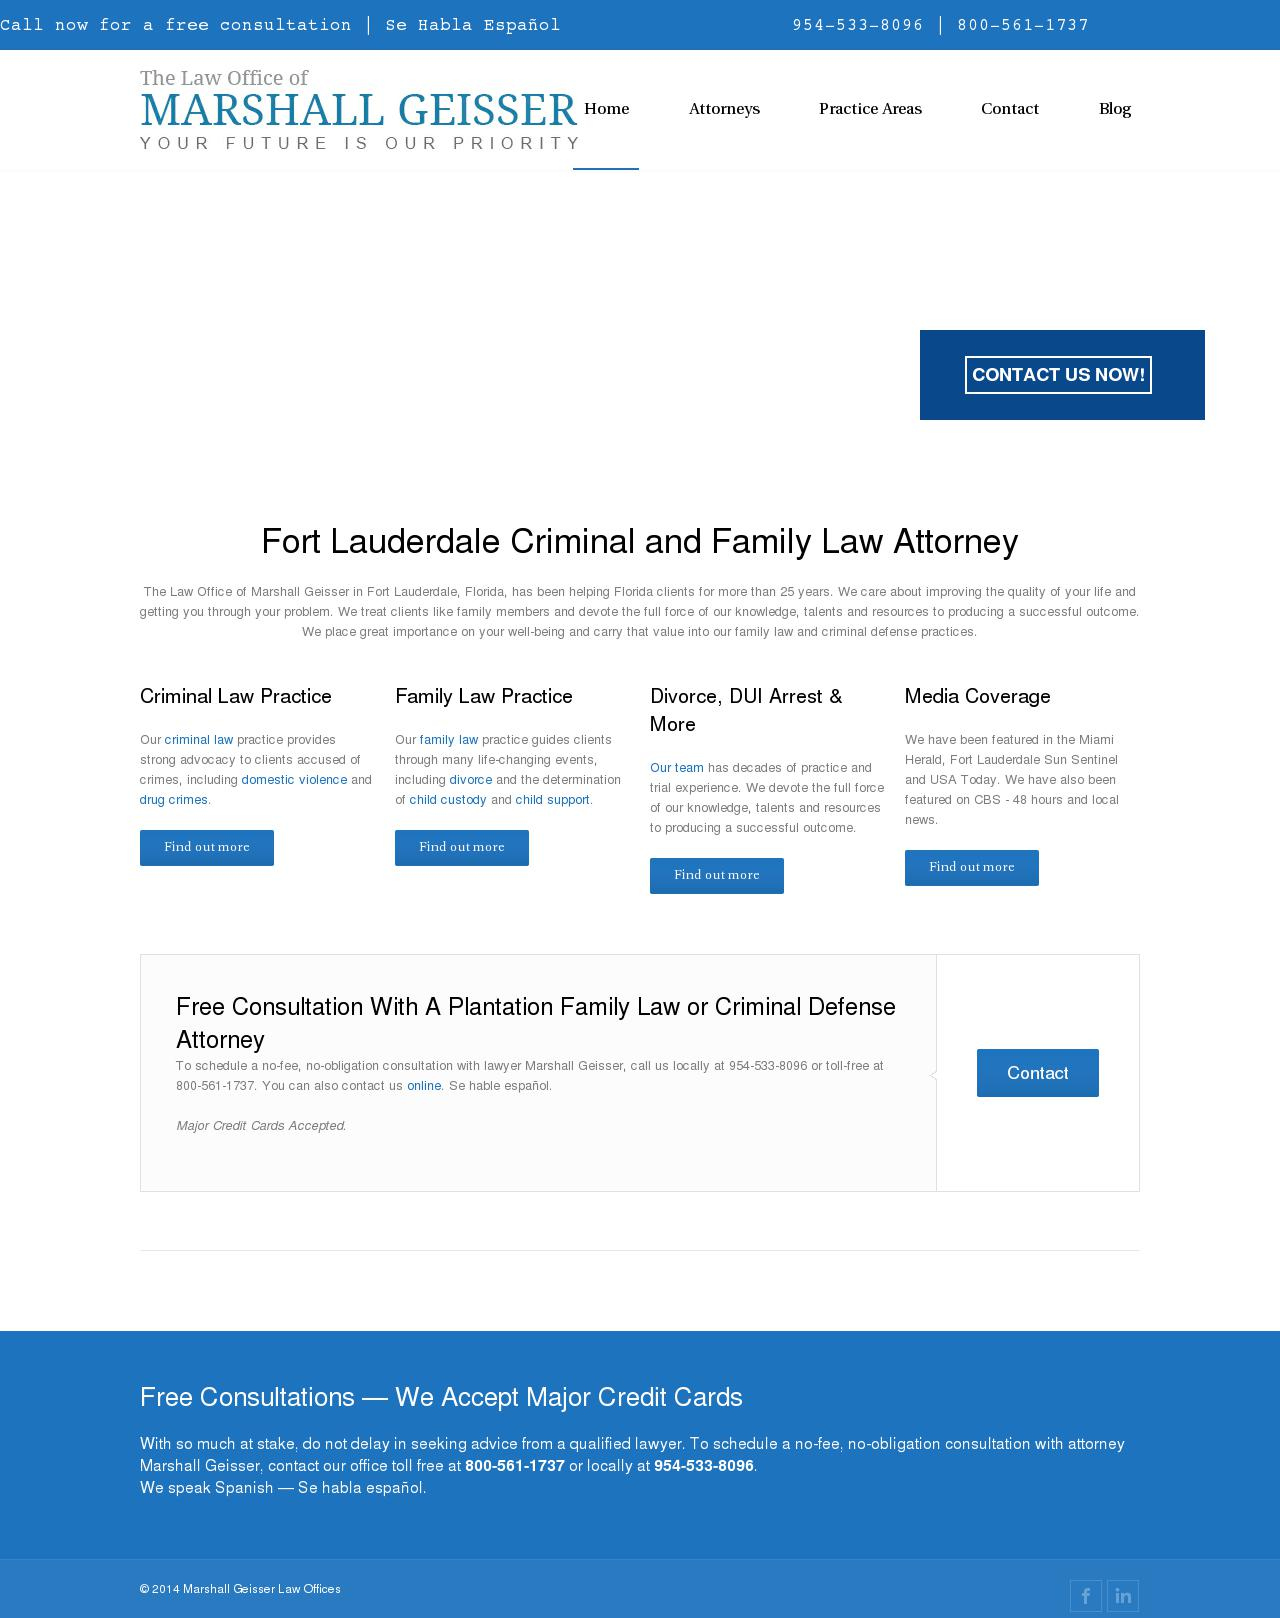 The Law Office of Marshall Geisser - Fort Lauderdale FL Lawyers